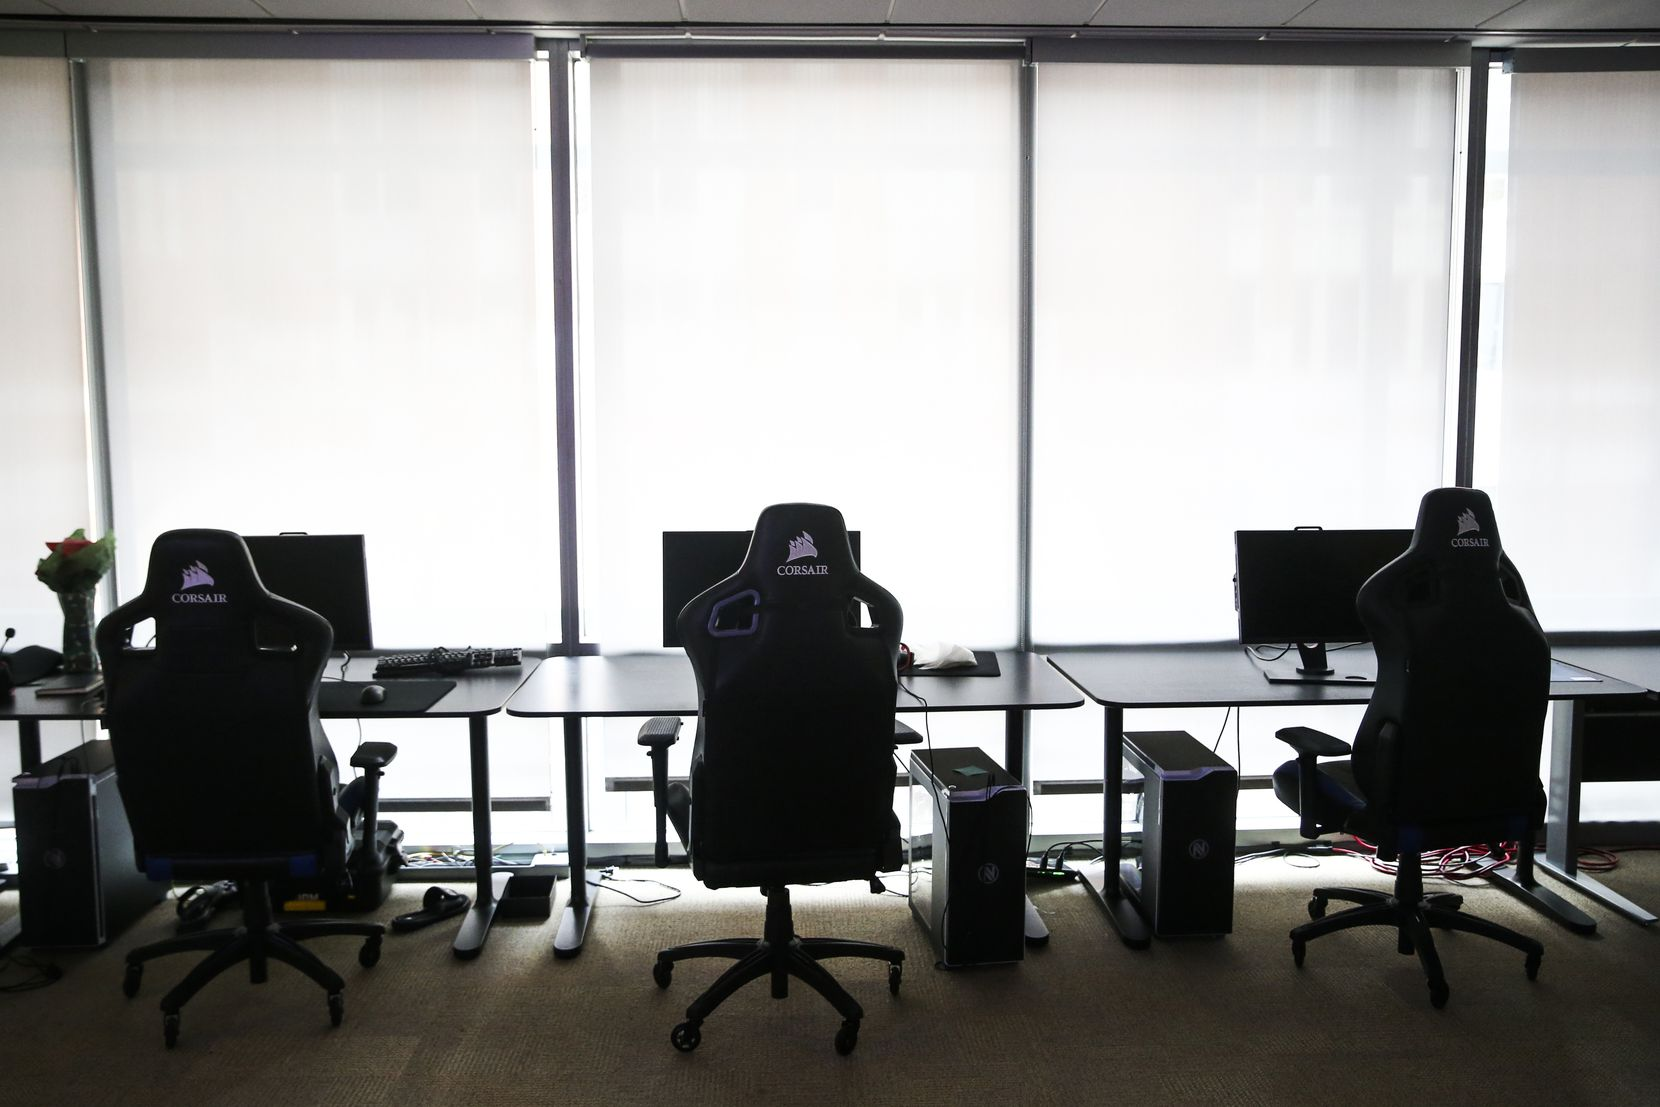 FILE - Gaming computers are seen at the Team Envy and Dallas Fuel office space in Victory Park on Friday, Feb. 1, 2019, in Dallas.